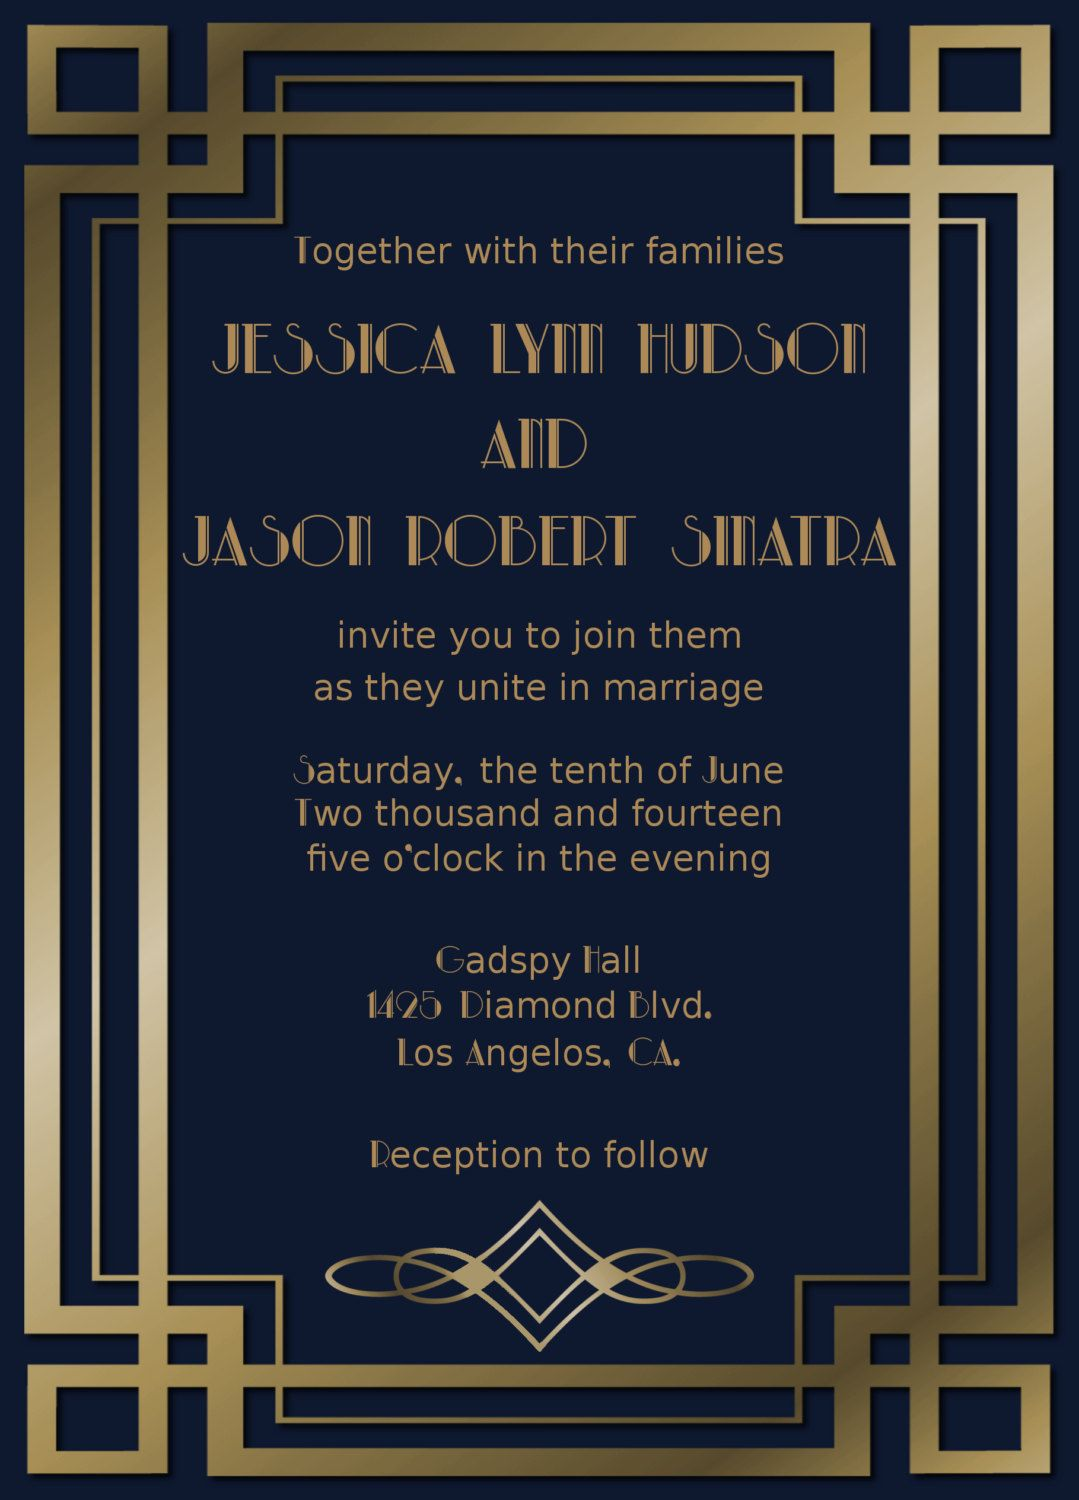 Great Gatsby Wedding Invitation Suiteart By Goosecornergreetings